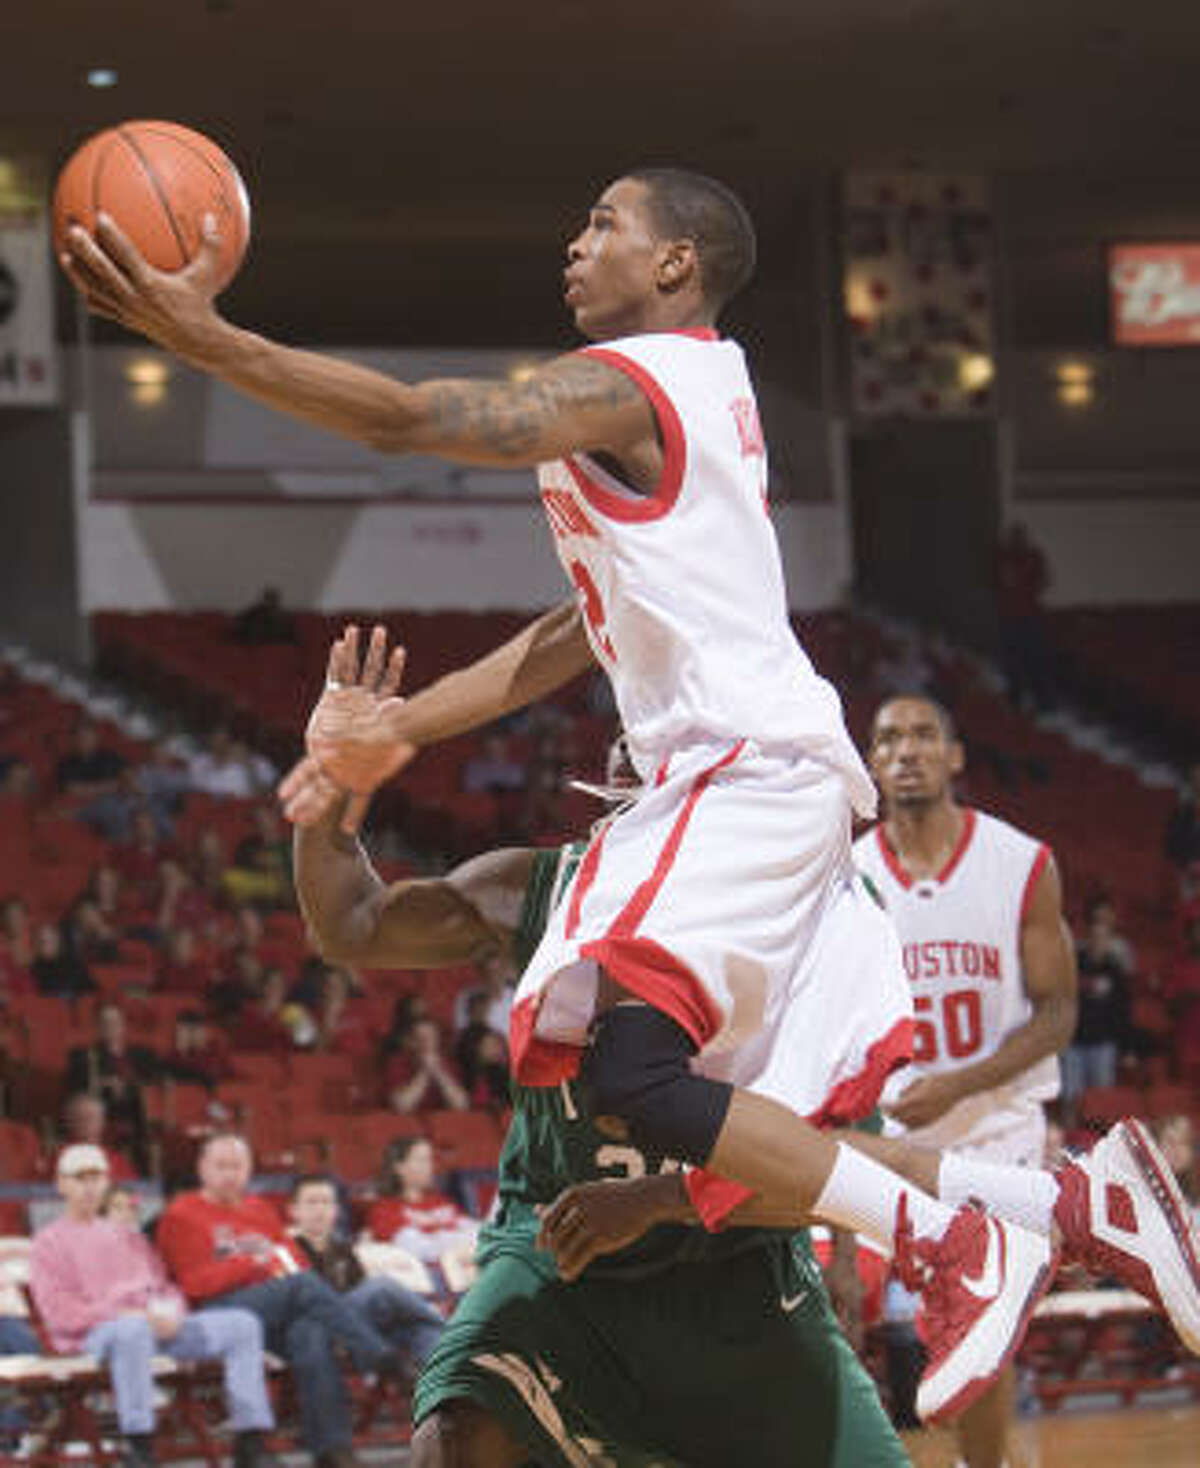 Houston's Zamal Nixon goes for a layup in the game against Tulane at the Hofheinz Pavilion.